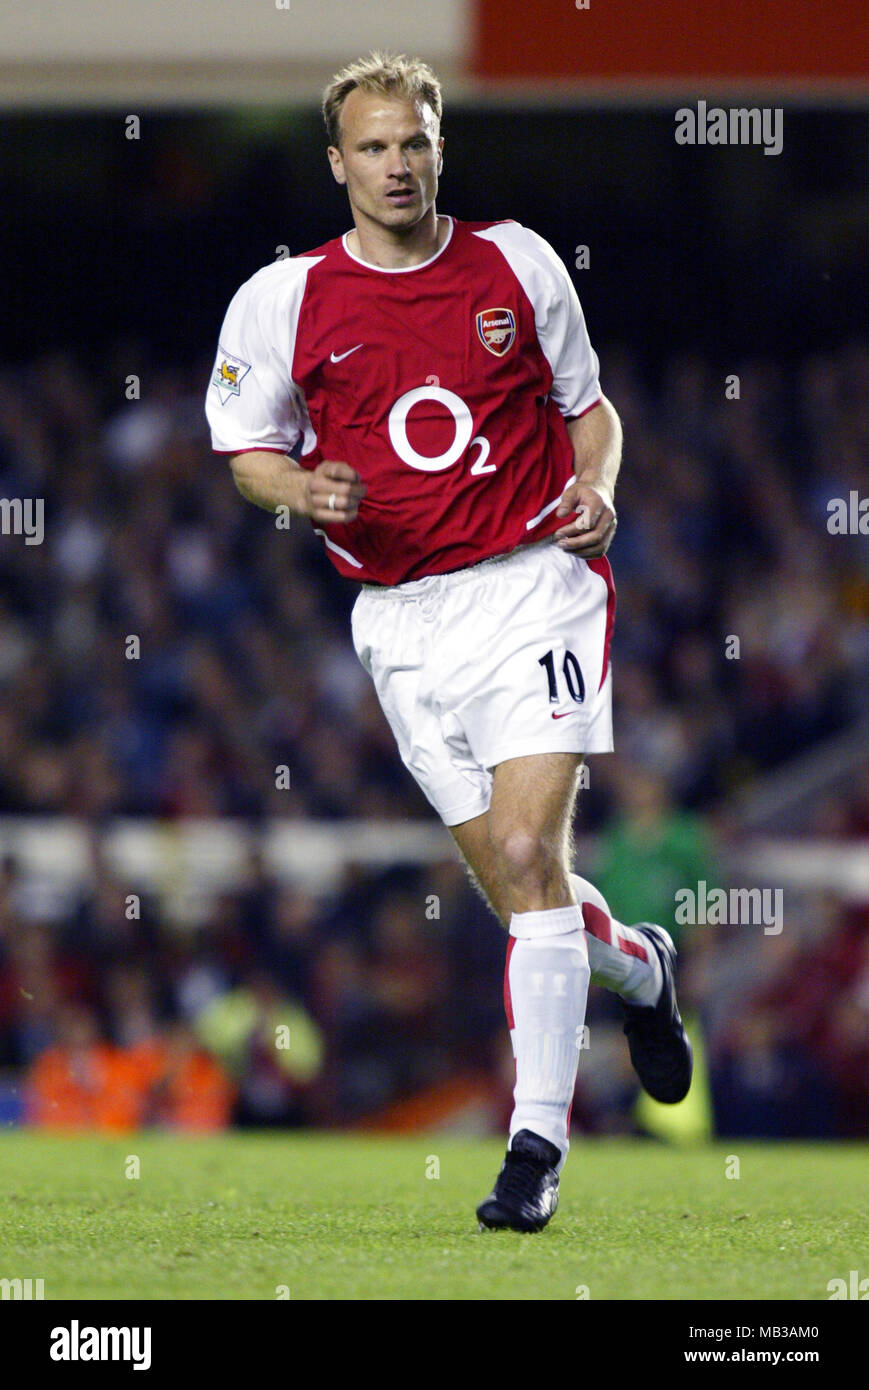 finest selection ab176 cc36c Dennis Bergkamp stock image playing for Arsenal wearing O2 ...